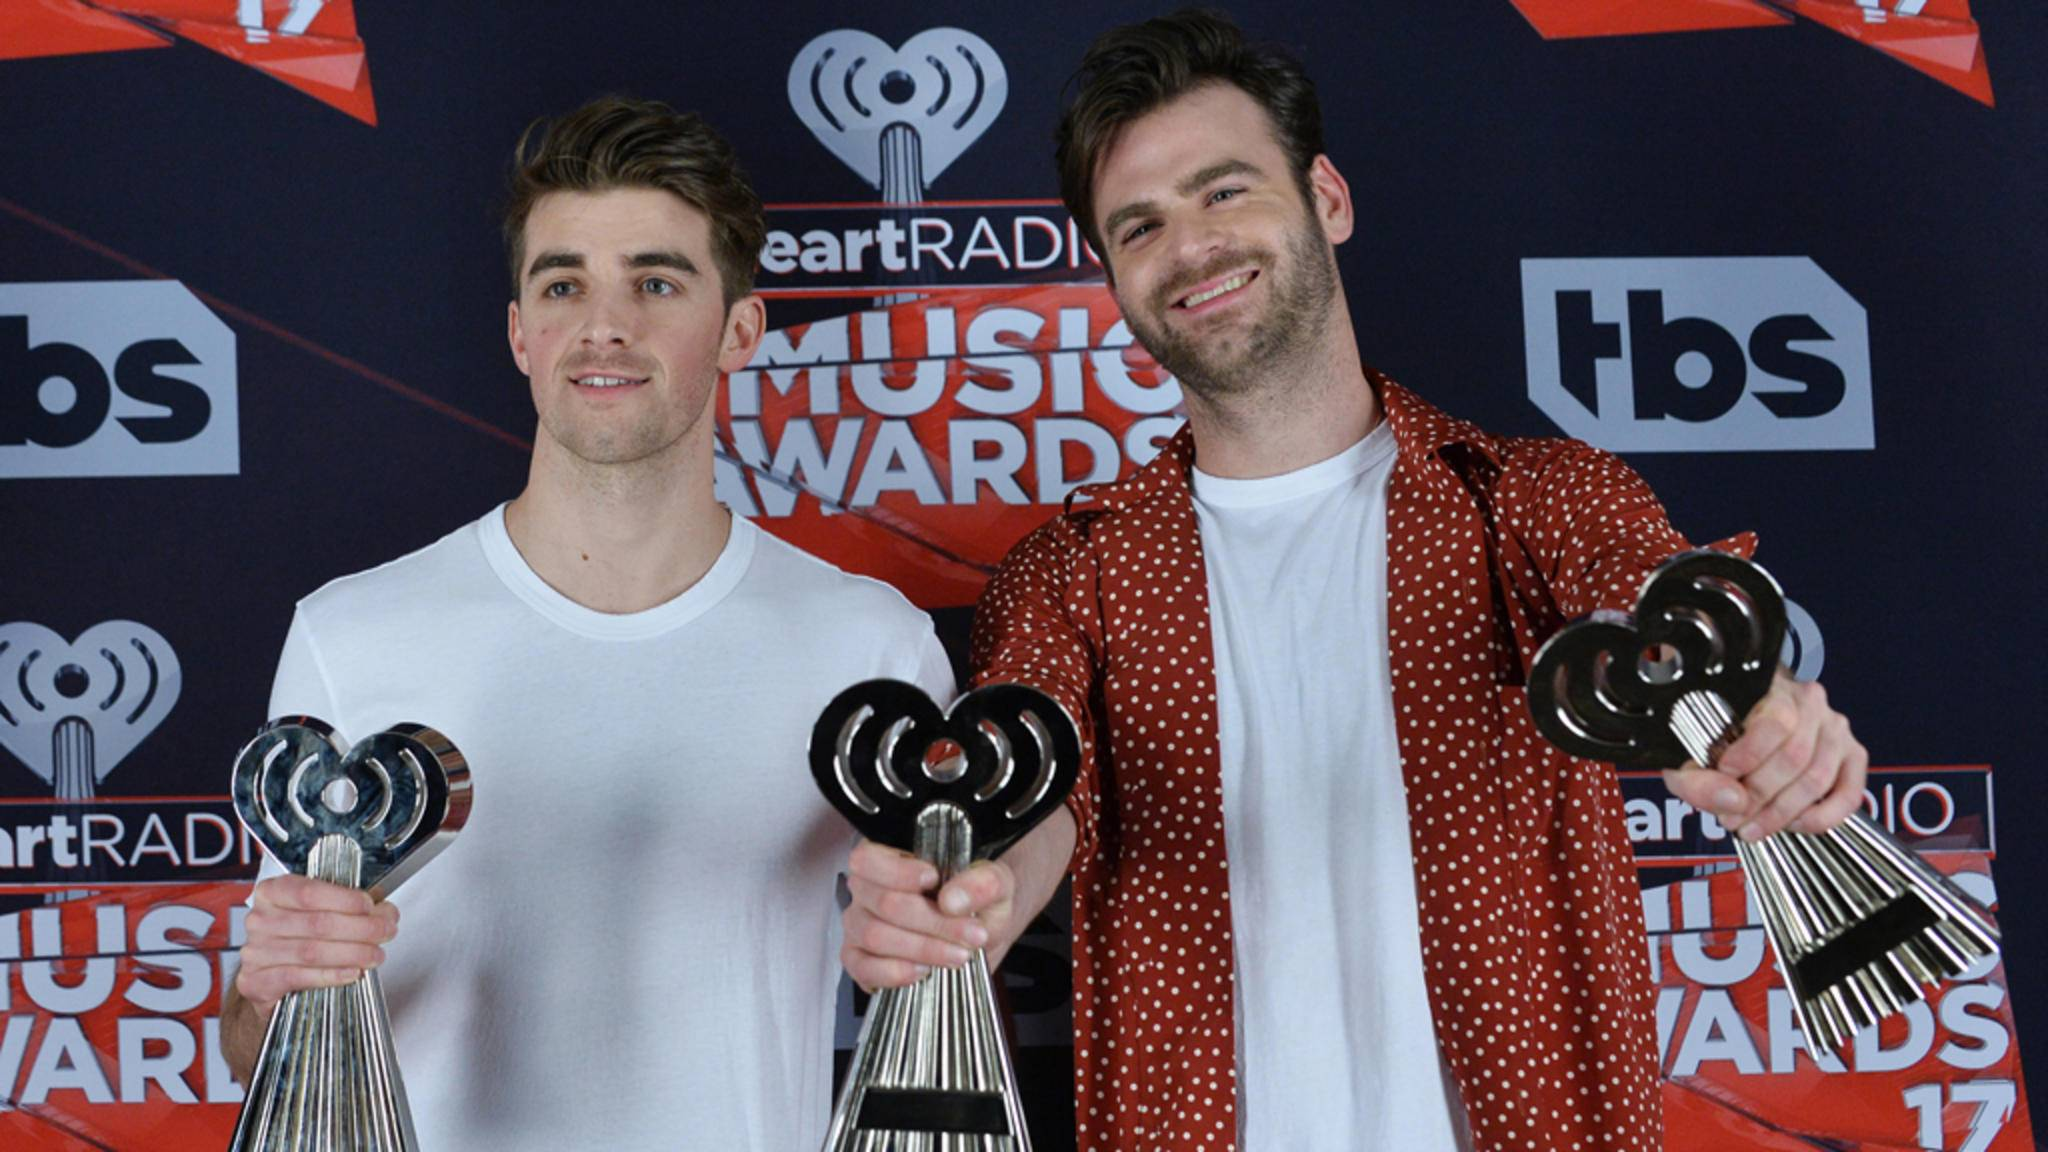 Stolze Gewinner: The Chainsmokers nach den iHeart Radio Music Awards 2017.